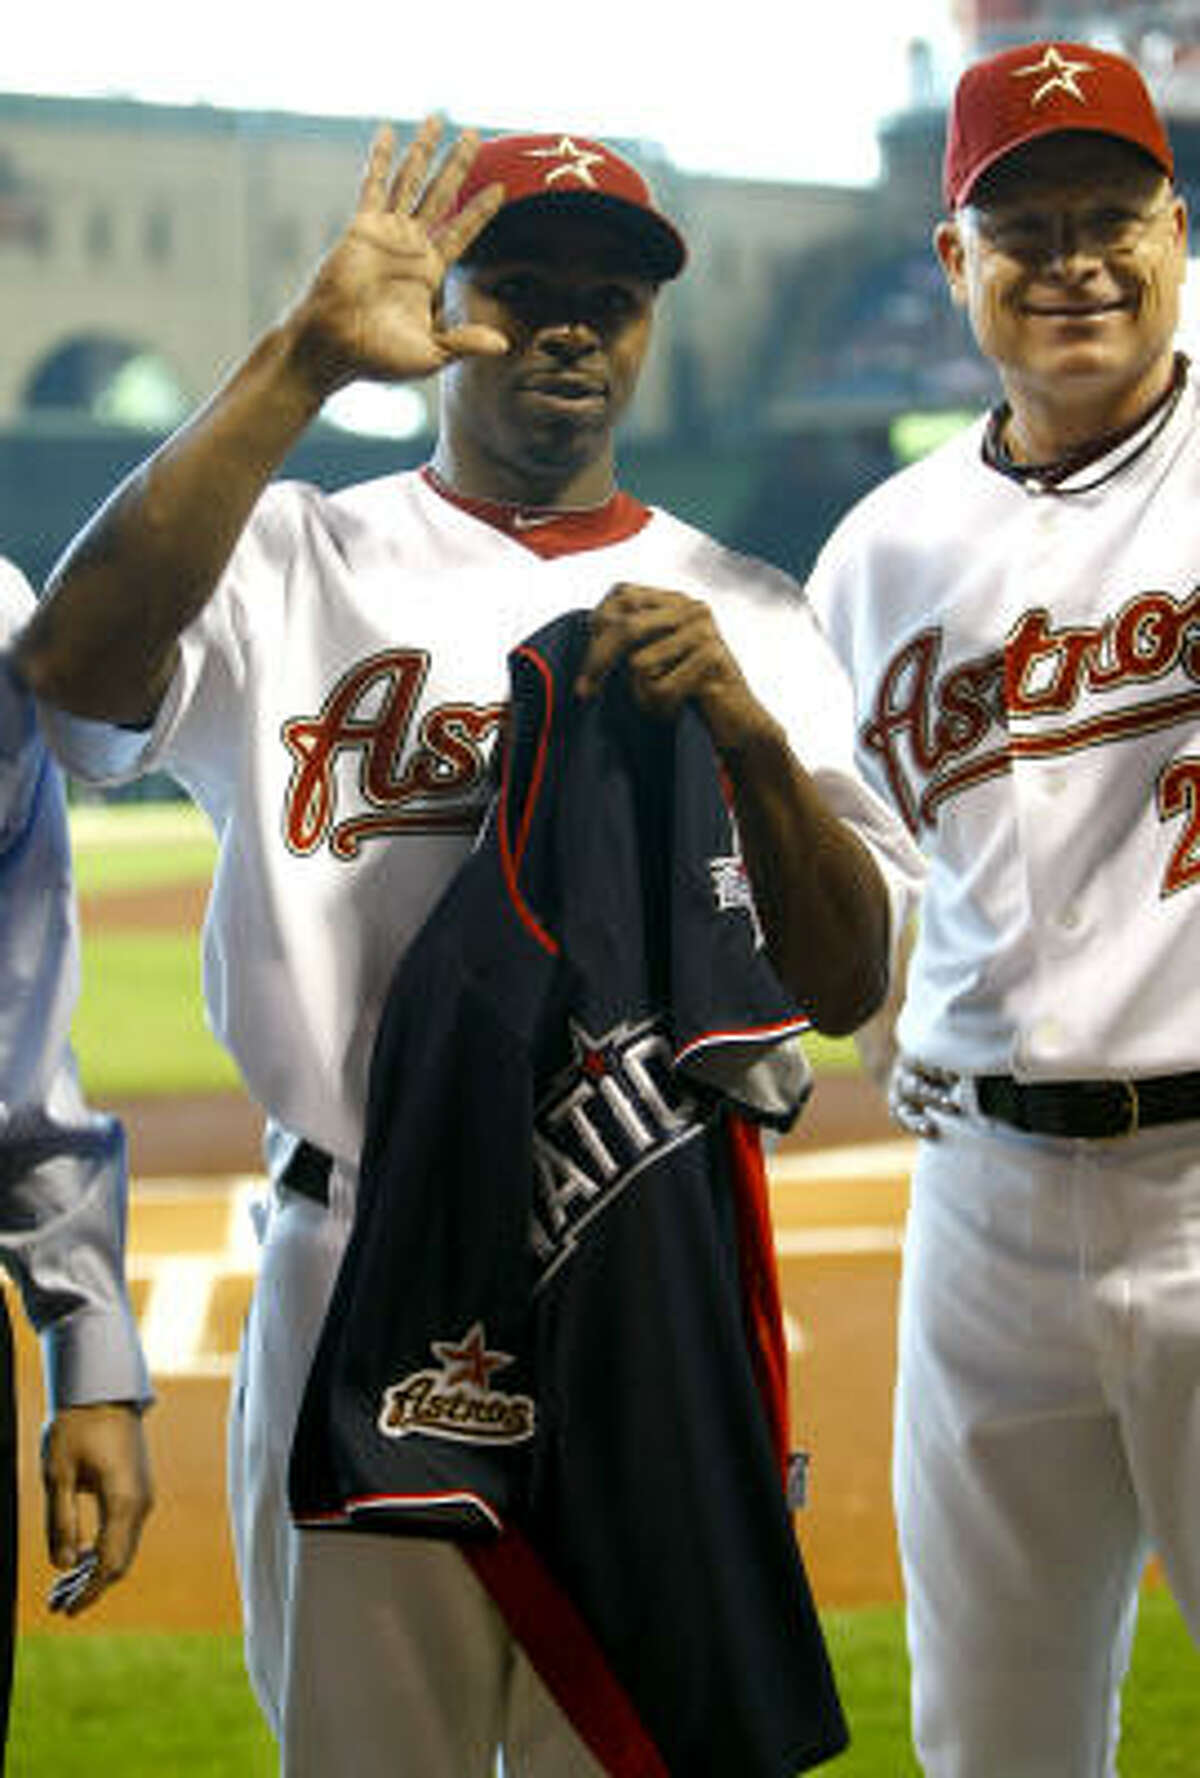 Astros center fielder Michael Bourn receives his All-Star jersey during a pregame ceremony.